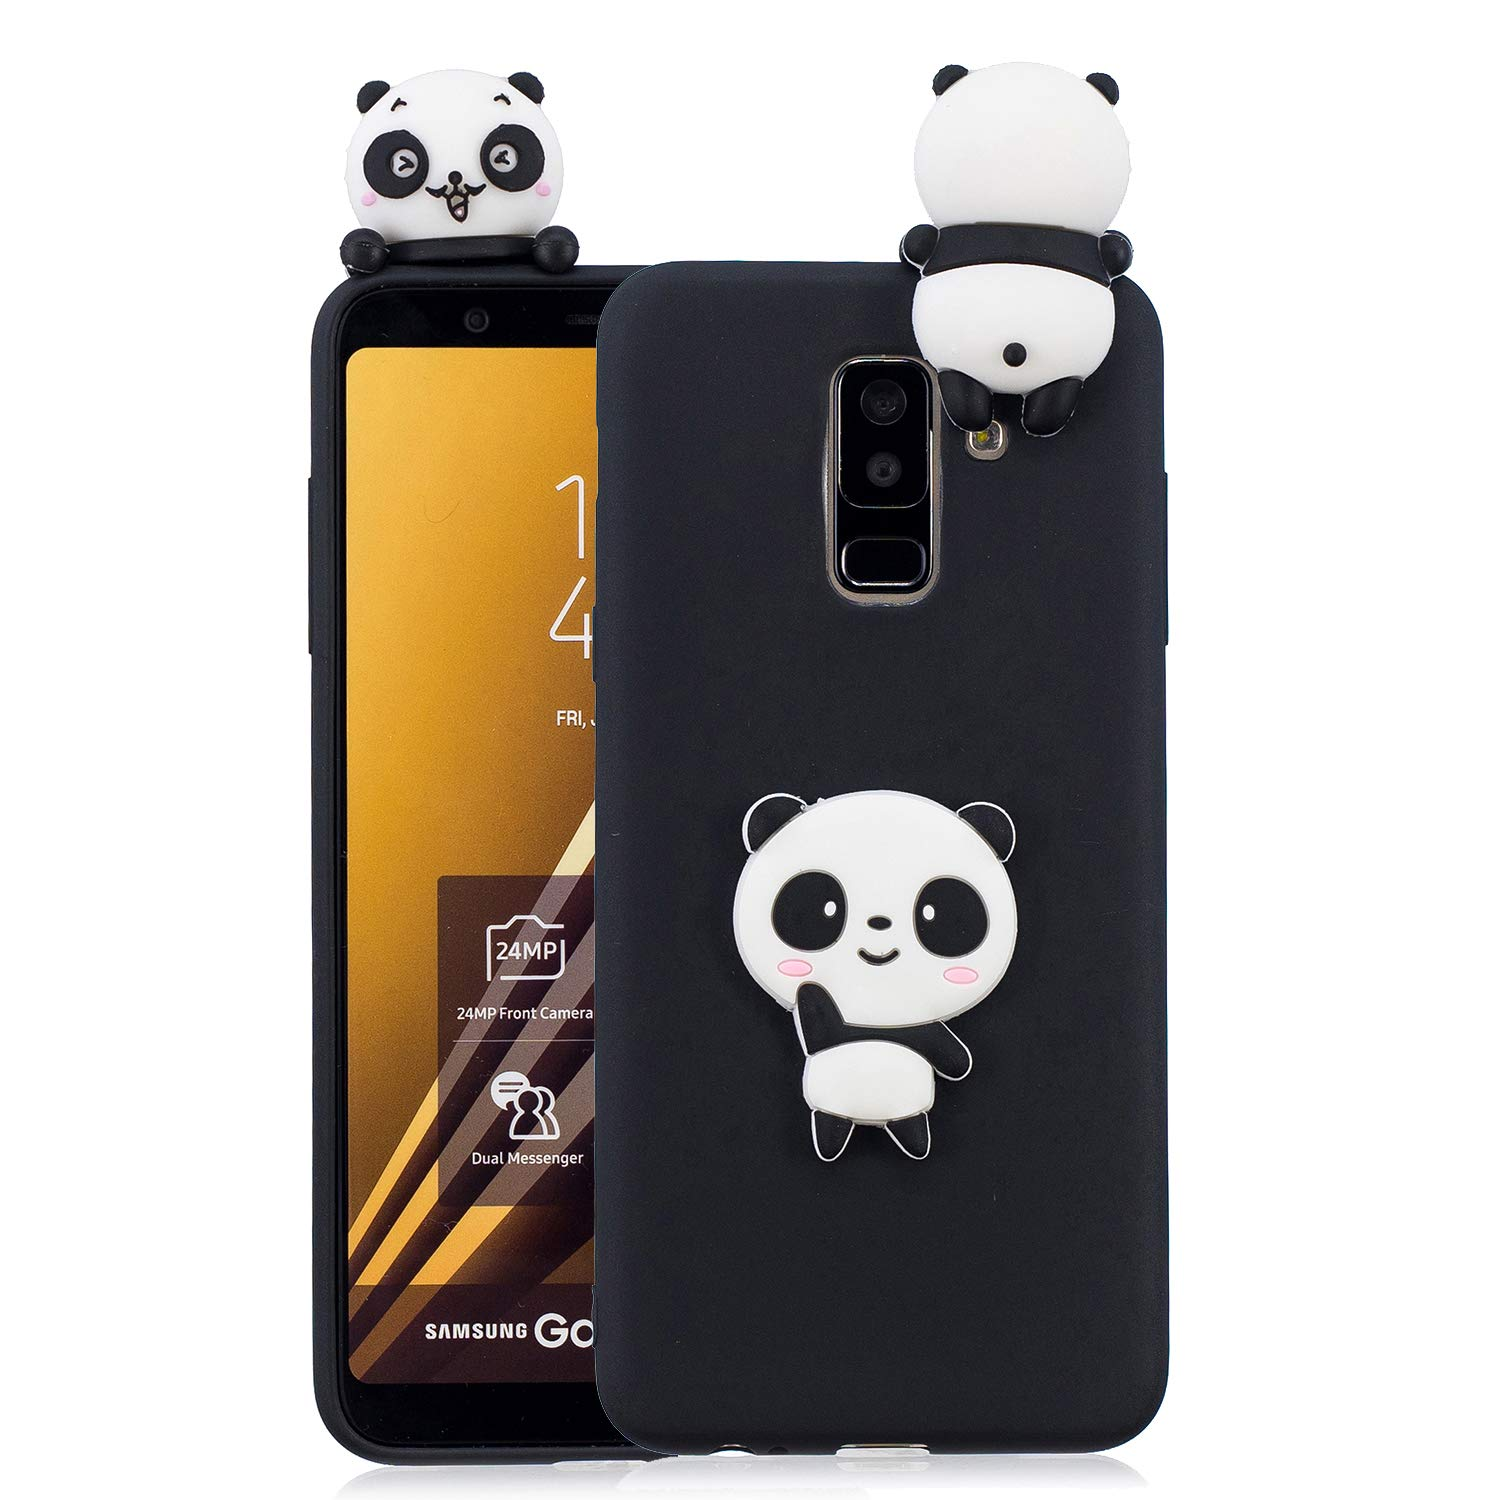 HopMore Coque Samsung Galaxy A6 Plus 2018 Silicone Souple 3D Design Motif Fruit Animal Drôle Mignonne Etui Samsung Galxy J8 2018 / Samsung A6+ Étui Antichoc Ultra Mince Fine Gel Bumper Slim Case Housse Protection pour Fille Femme - Licorne